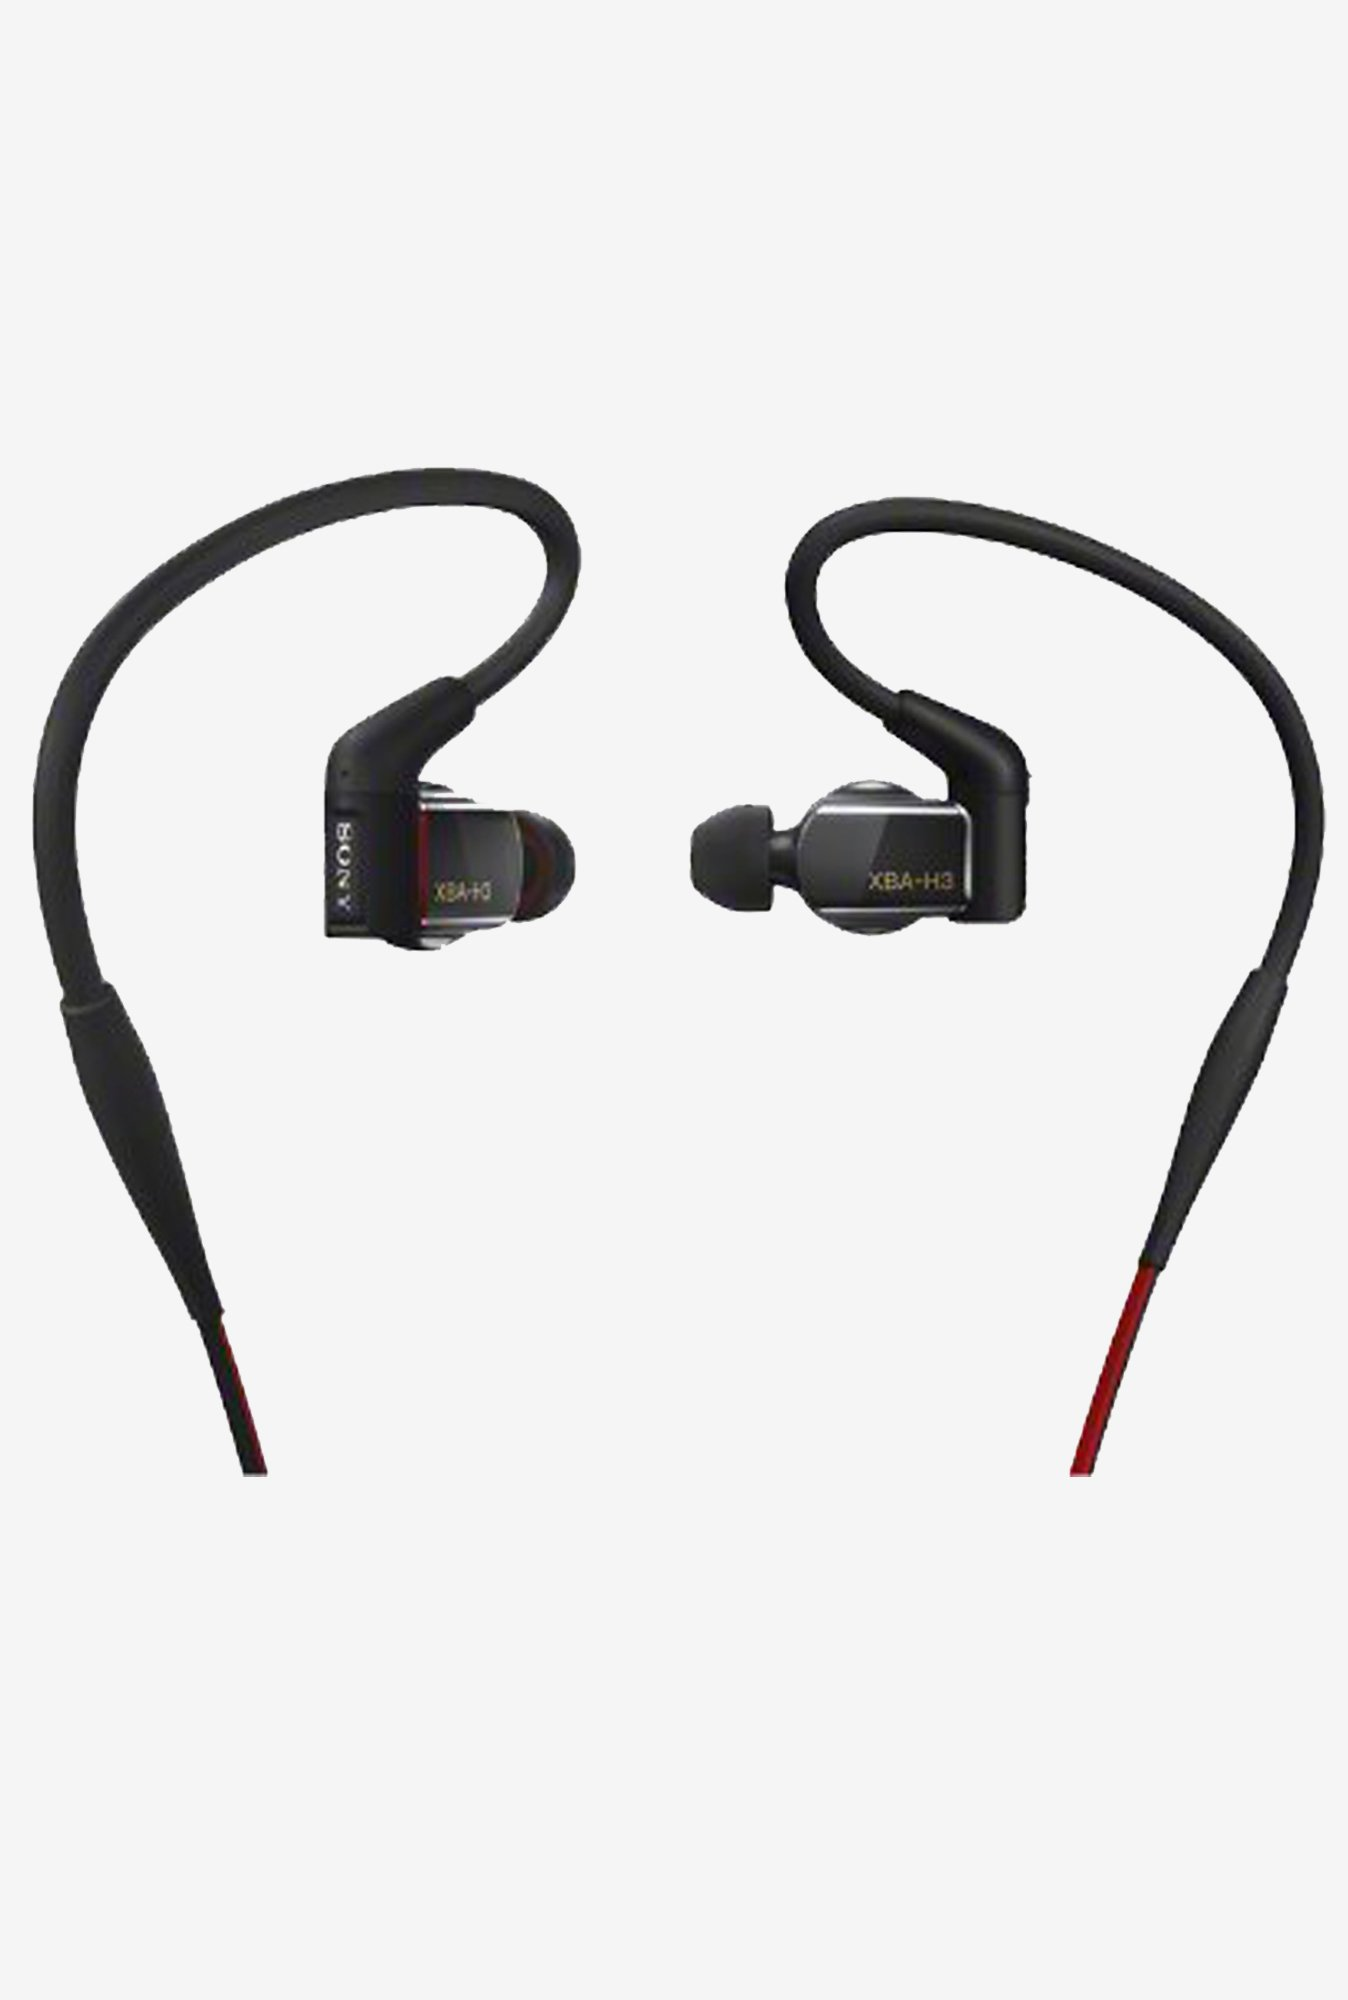 Sony XBAZ5 Ultimate Hi-Res In The Ear Headphone